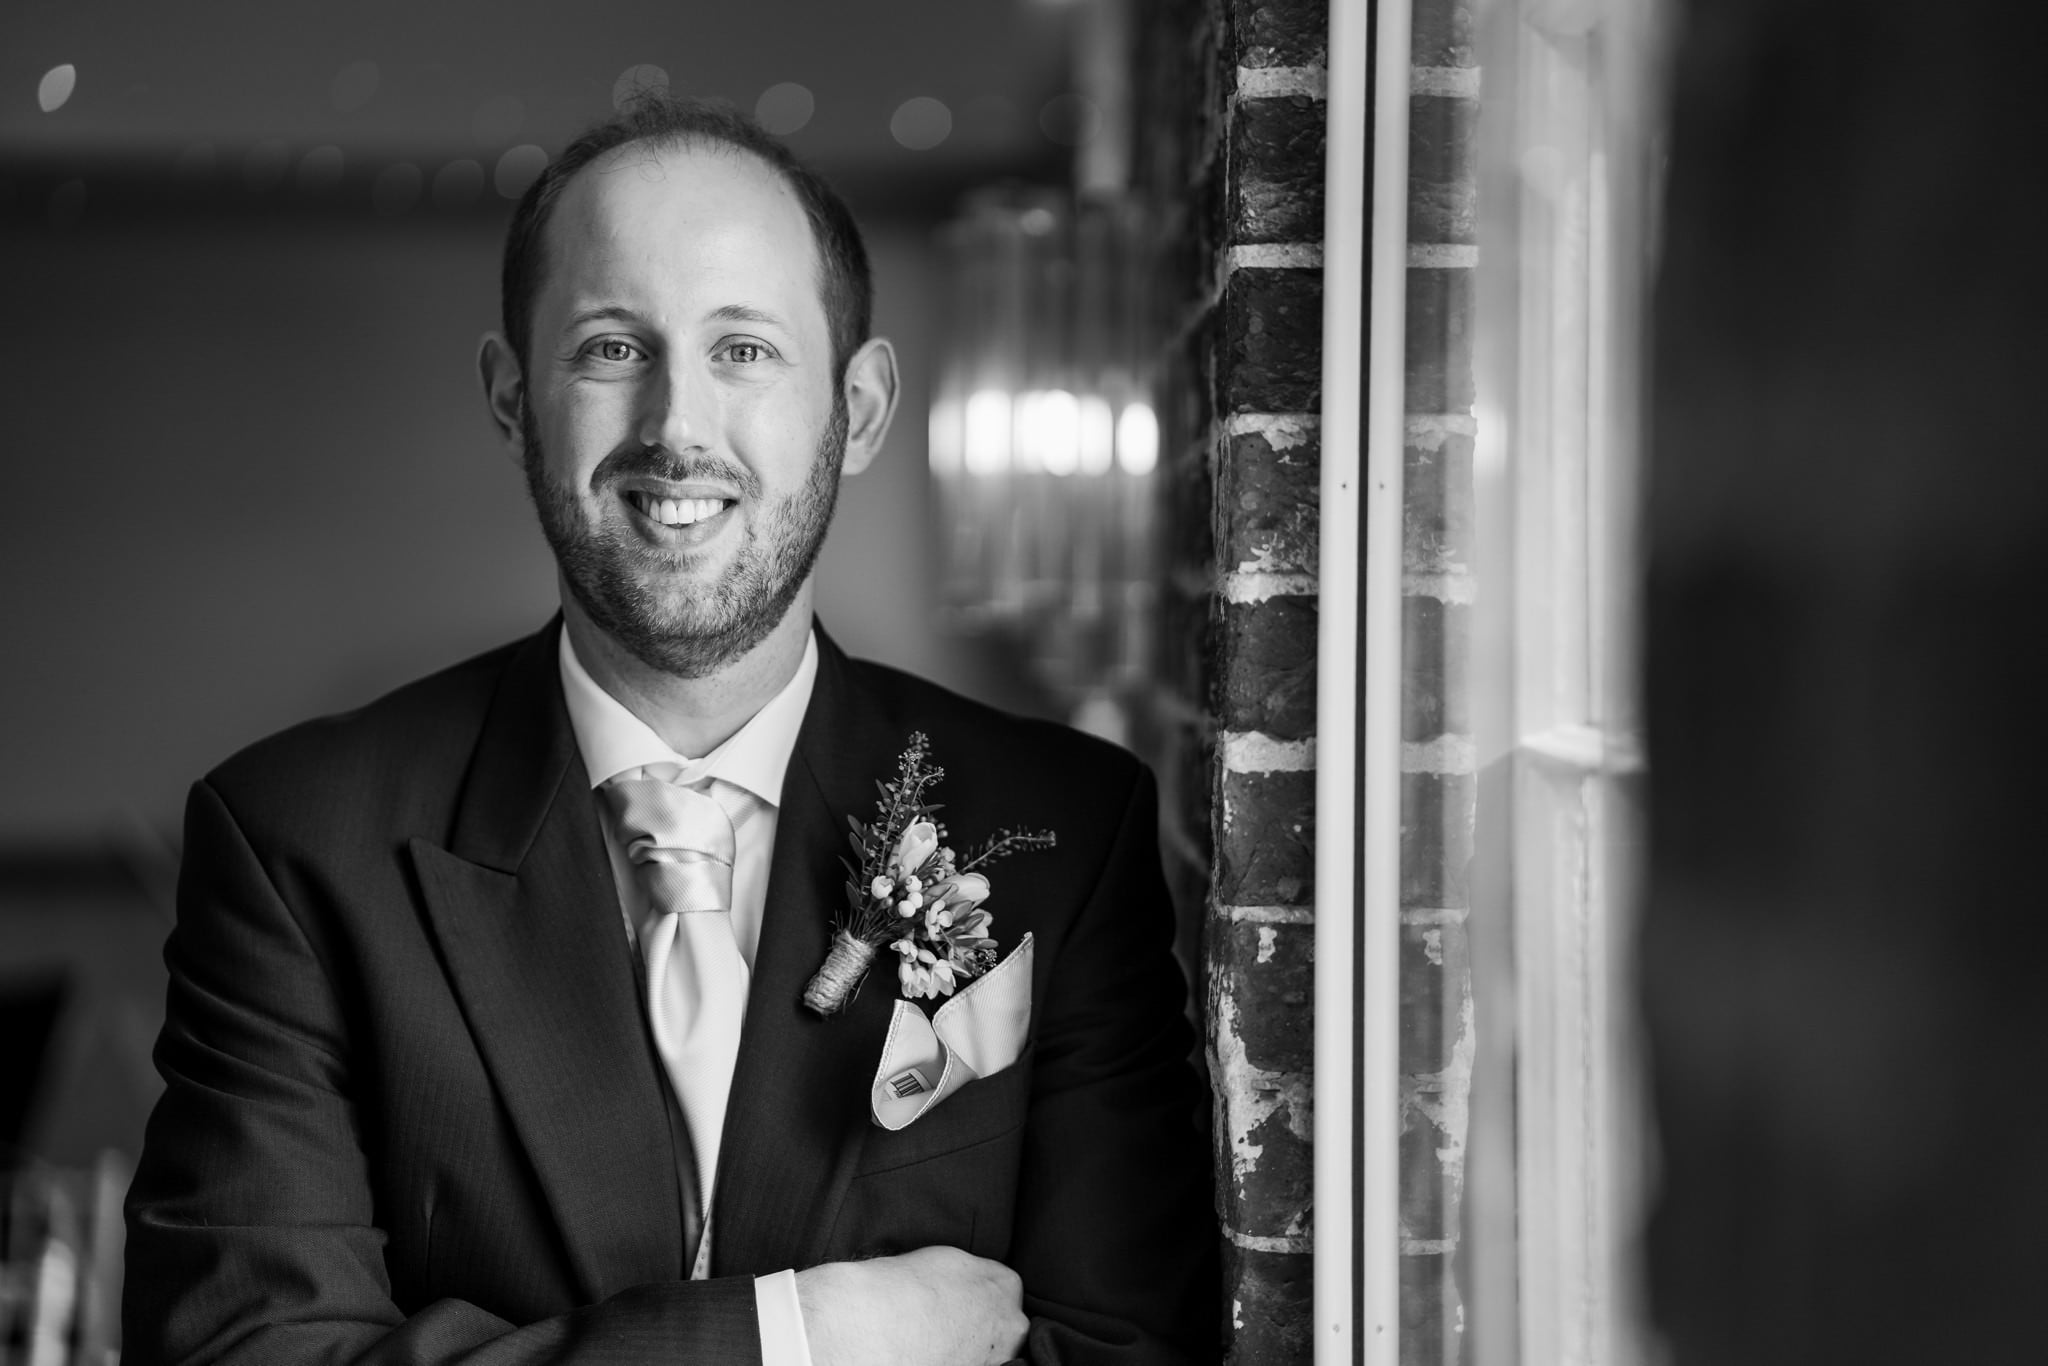 Groom at Sopley Mill spring wedding